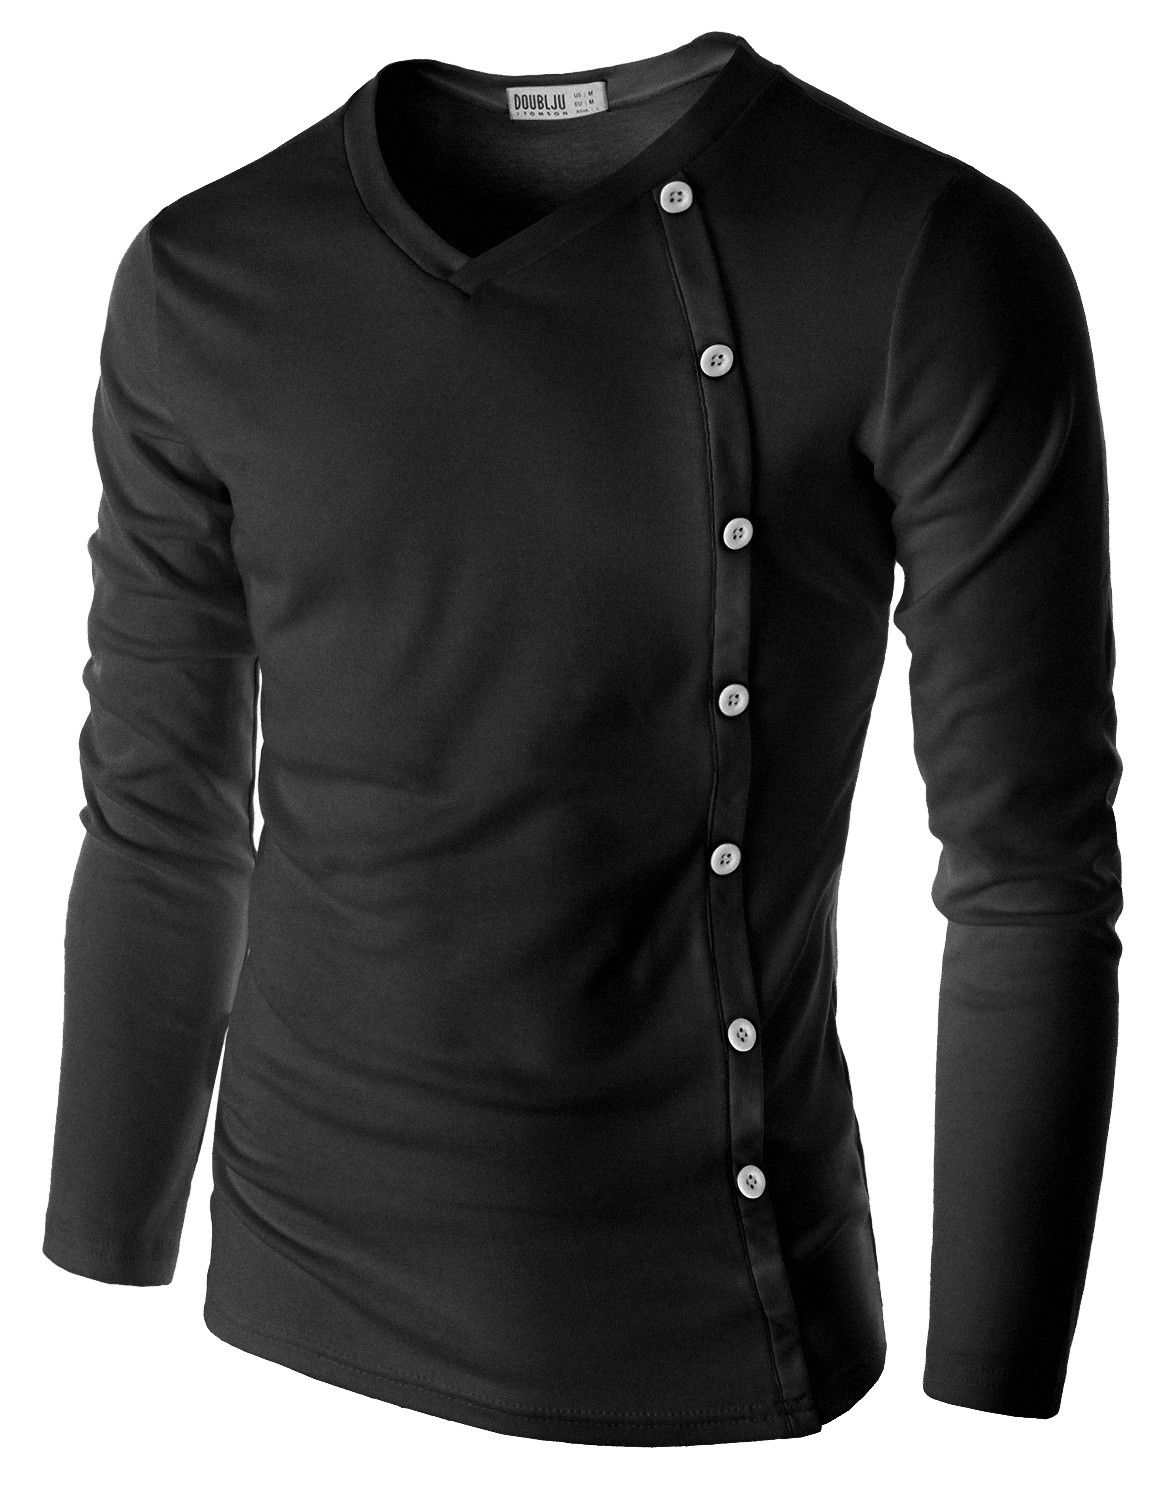 Long sleeve button-up | image | Pinterest | Clothes, Men's fashion ...